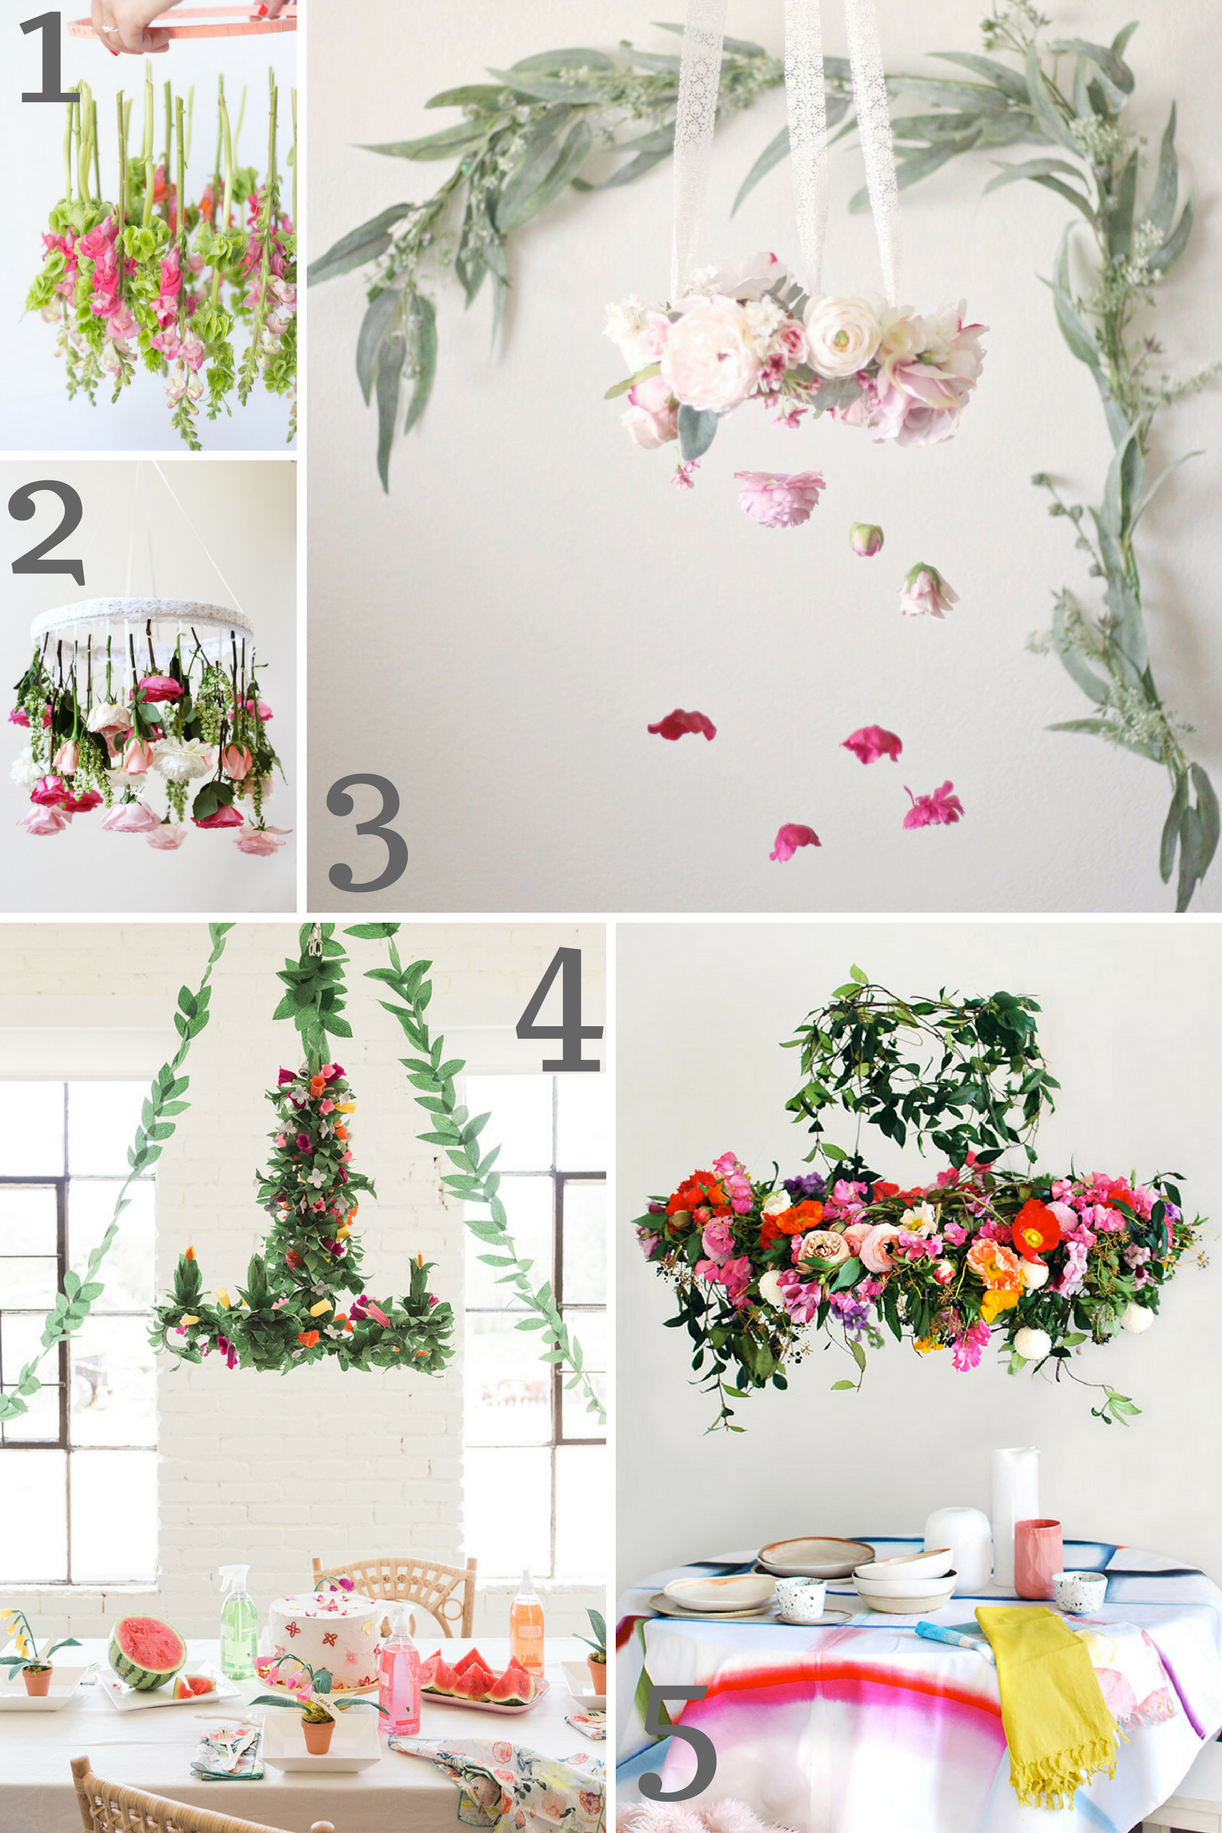 Diy flower chandelier inspiration hill city bride virginia diy flower chandelier inspiration seen on hill city bride arubaitofo Image collections